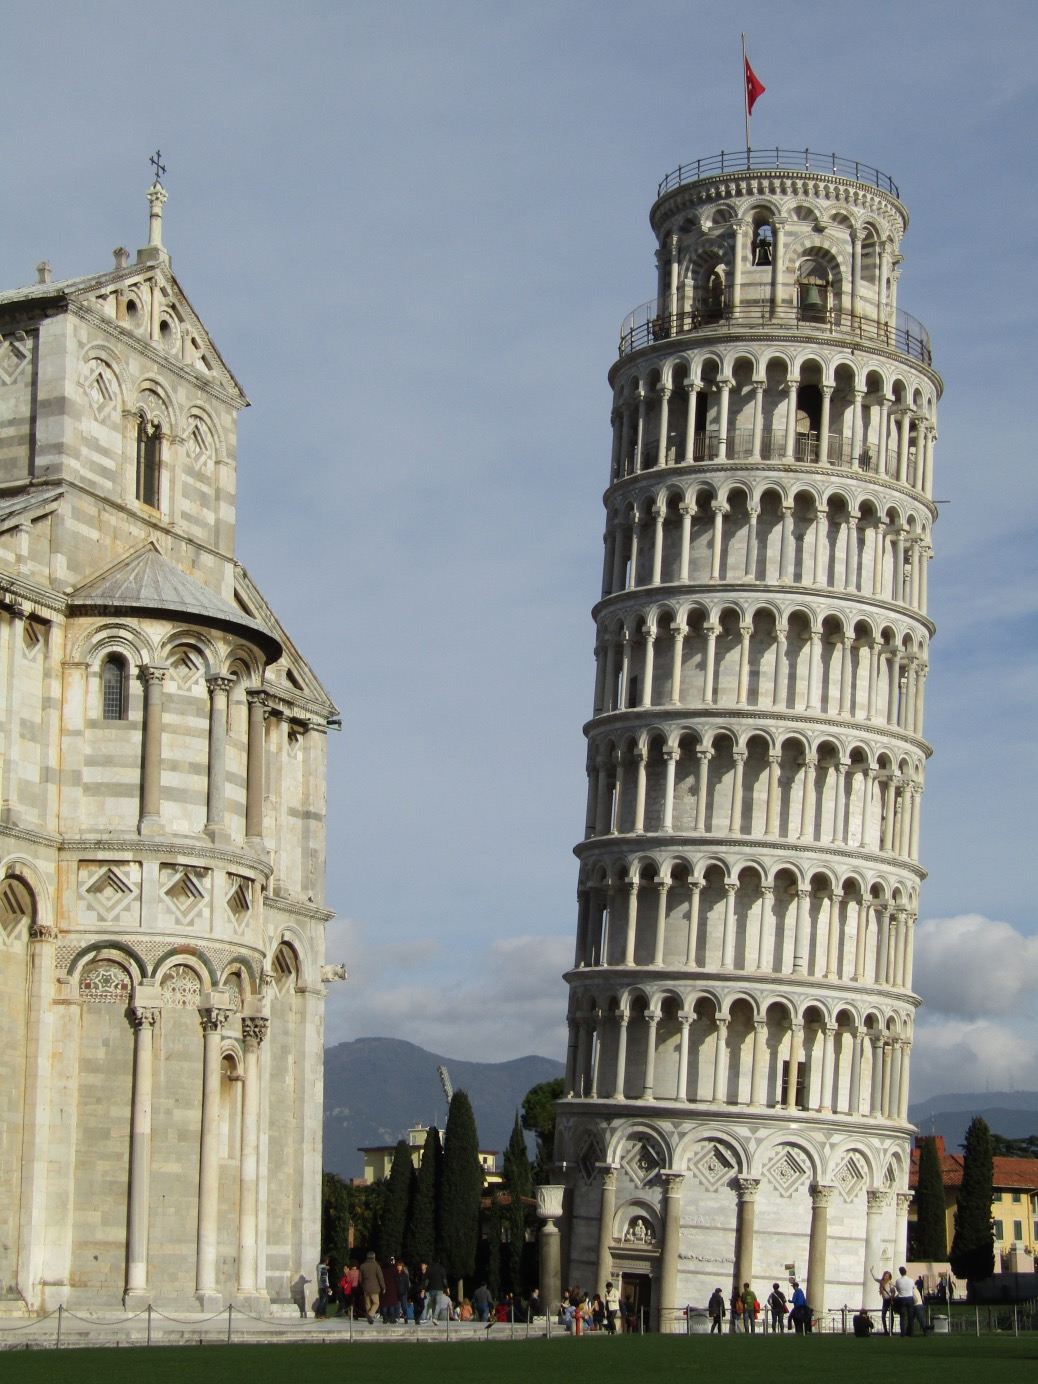 The neighboring Baptistry provides a point of comparison to show the amount of lean in the tower.